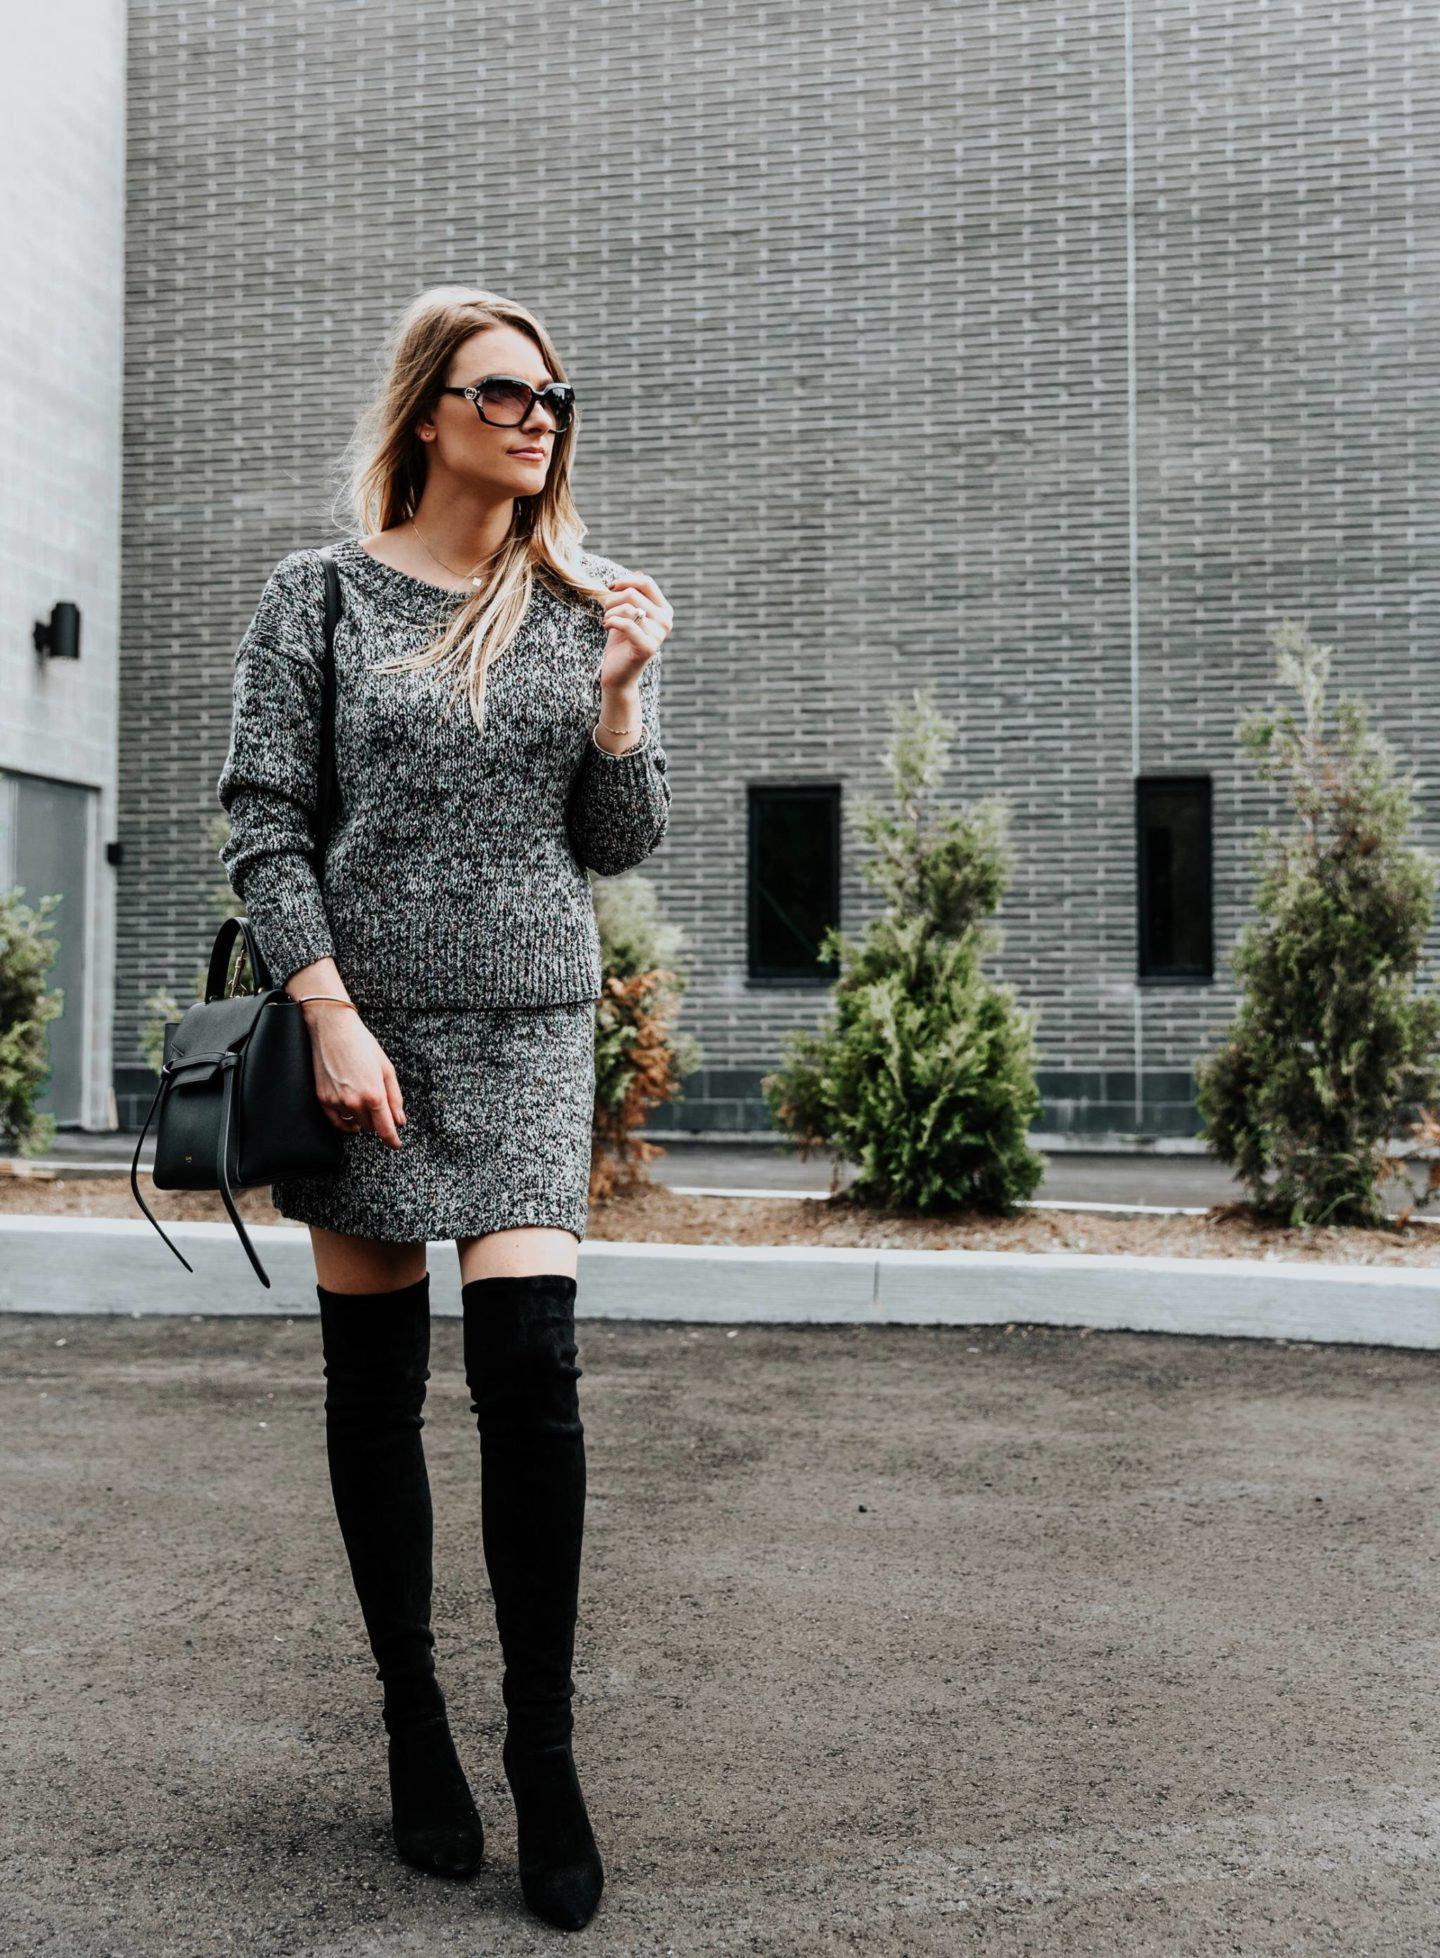 fashion blogger in fall outfit, otk boots outfit